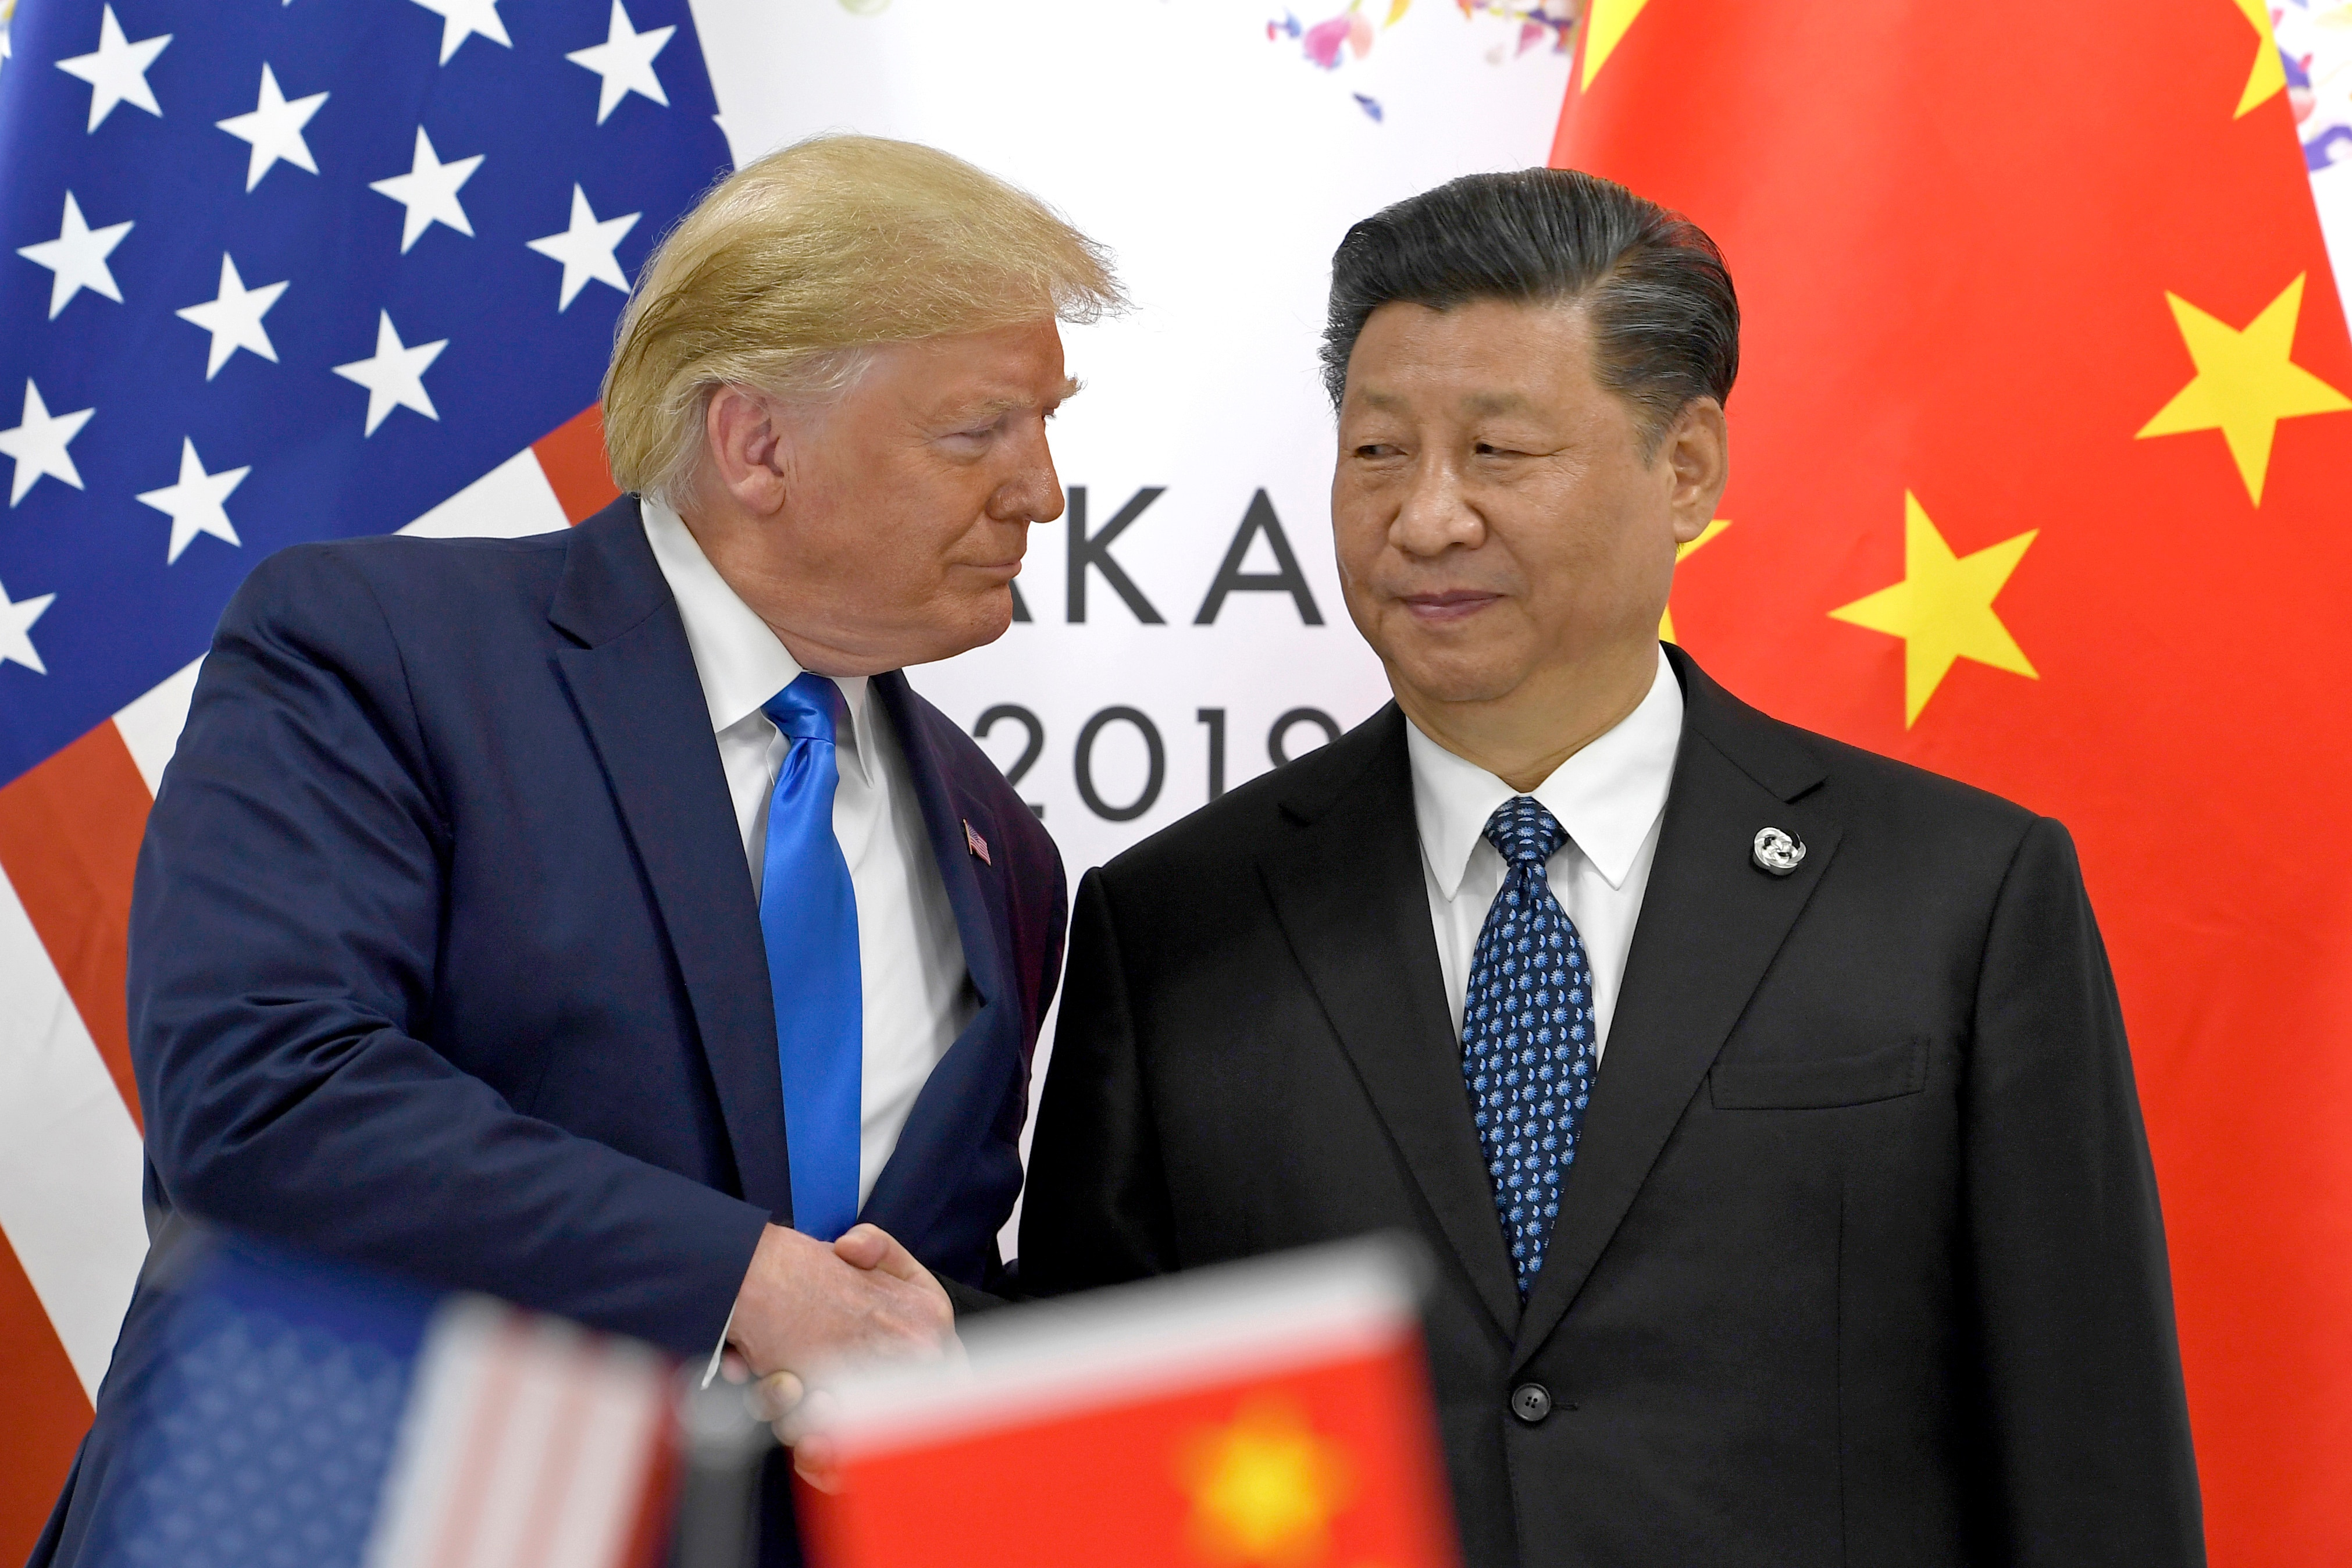 US President Donald Trump, left, shakes hands with Chinese President Xi Jinping during a meeting on the sidelines of the G-20 summit in Osaka, Japan.